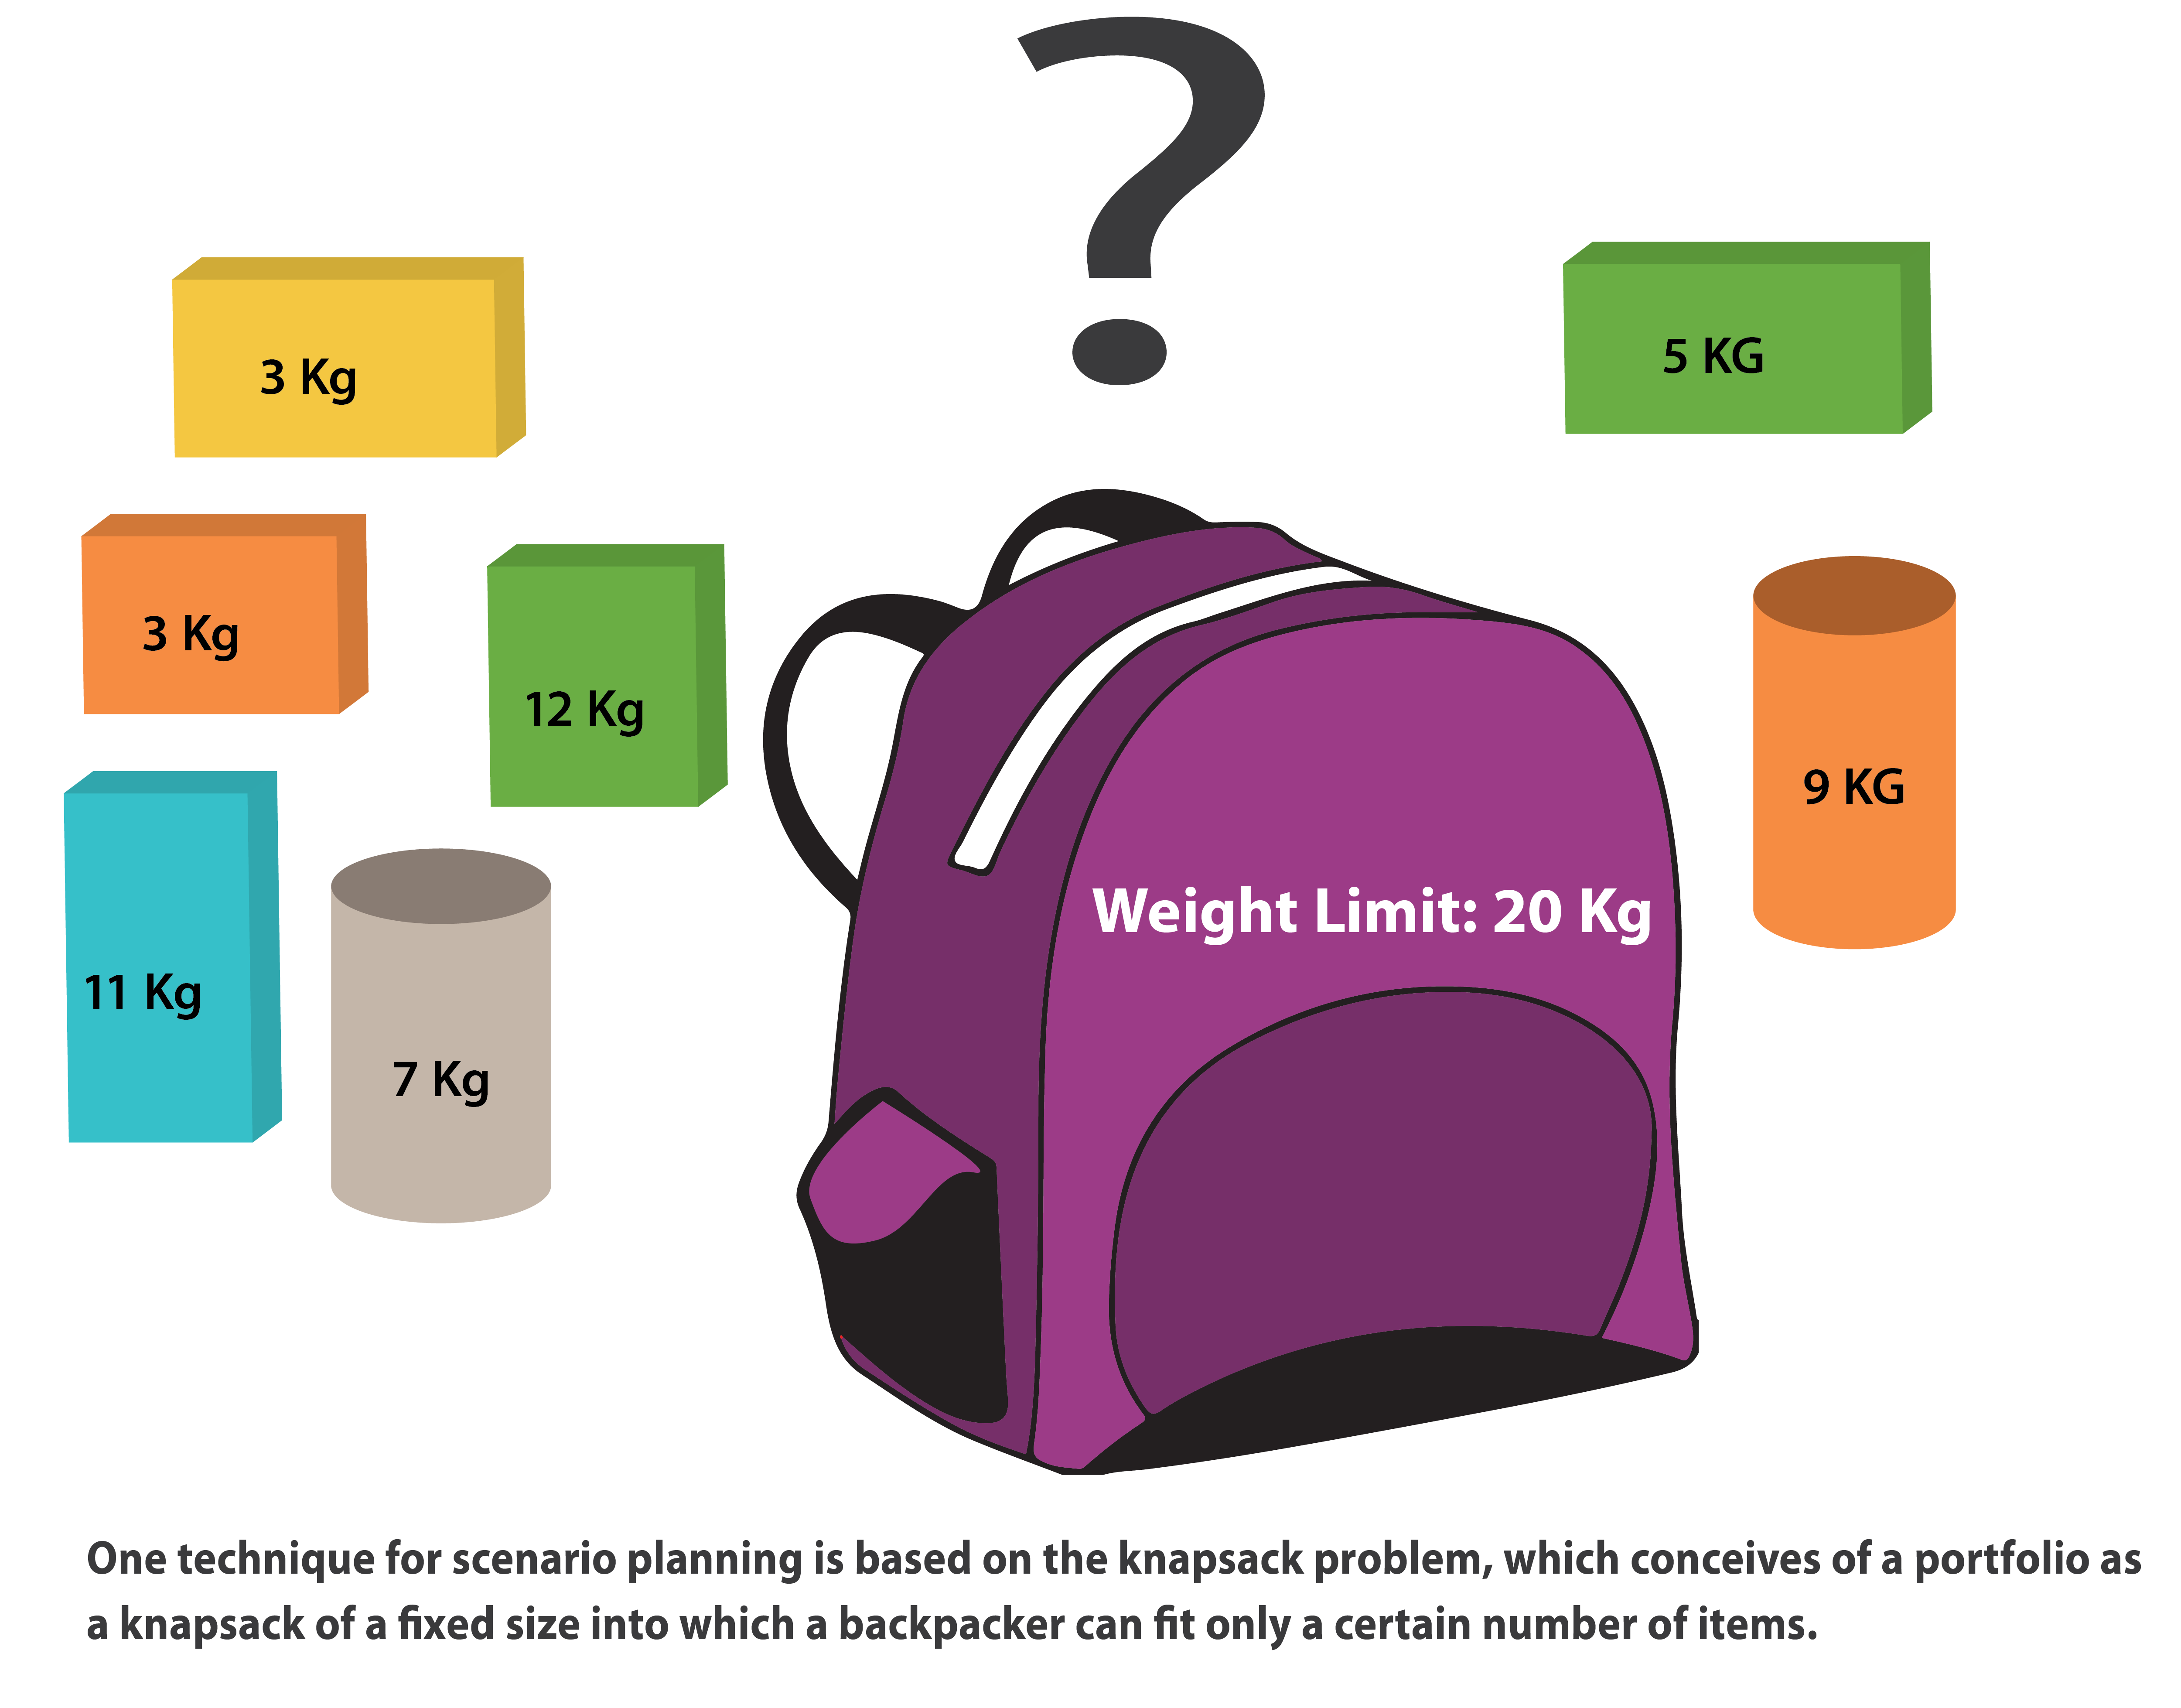 """One technique for scenario planning is based on the knapsack problem (illustrated here) which ocneives of a portfolio as a knapsack of a fixed size into which a backpacker can fit only a certain number of items."""